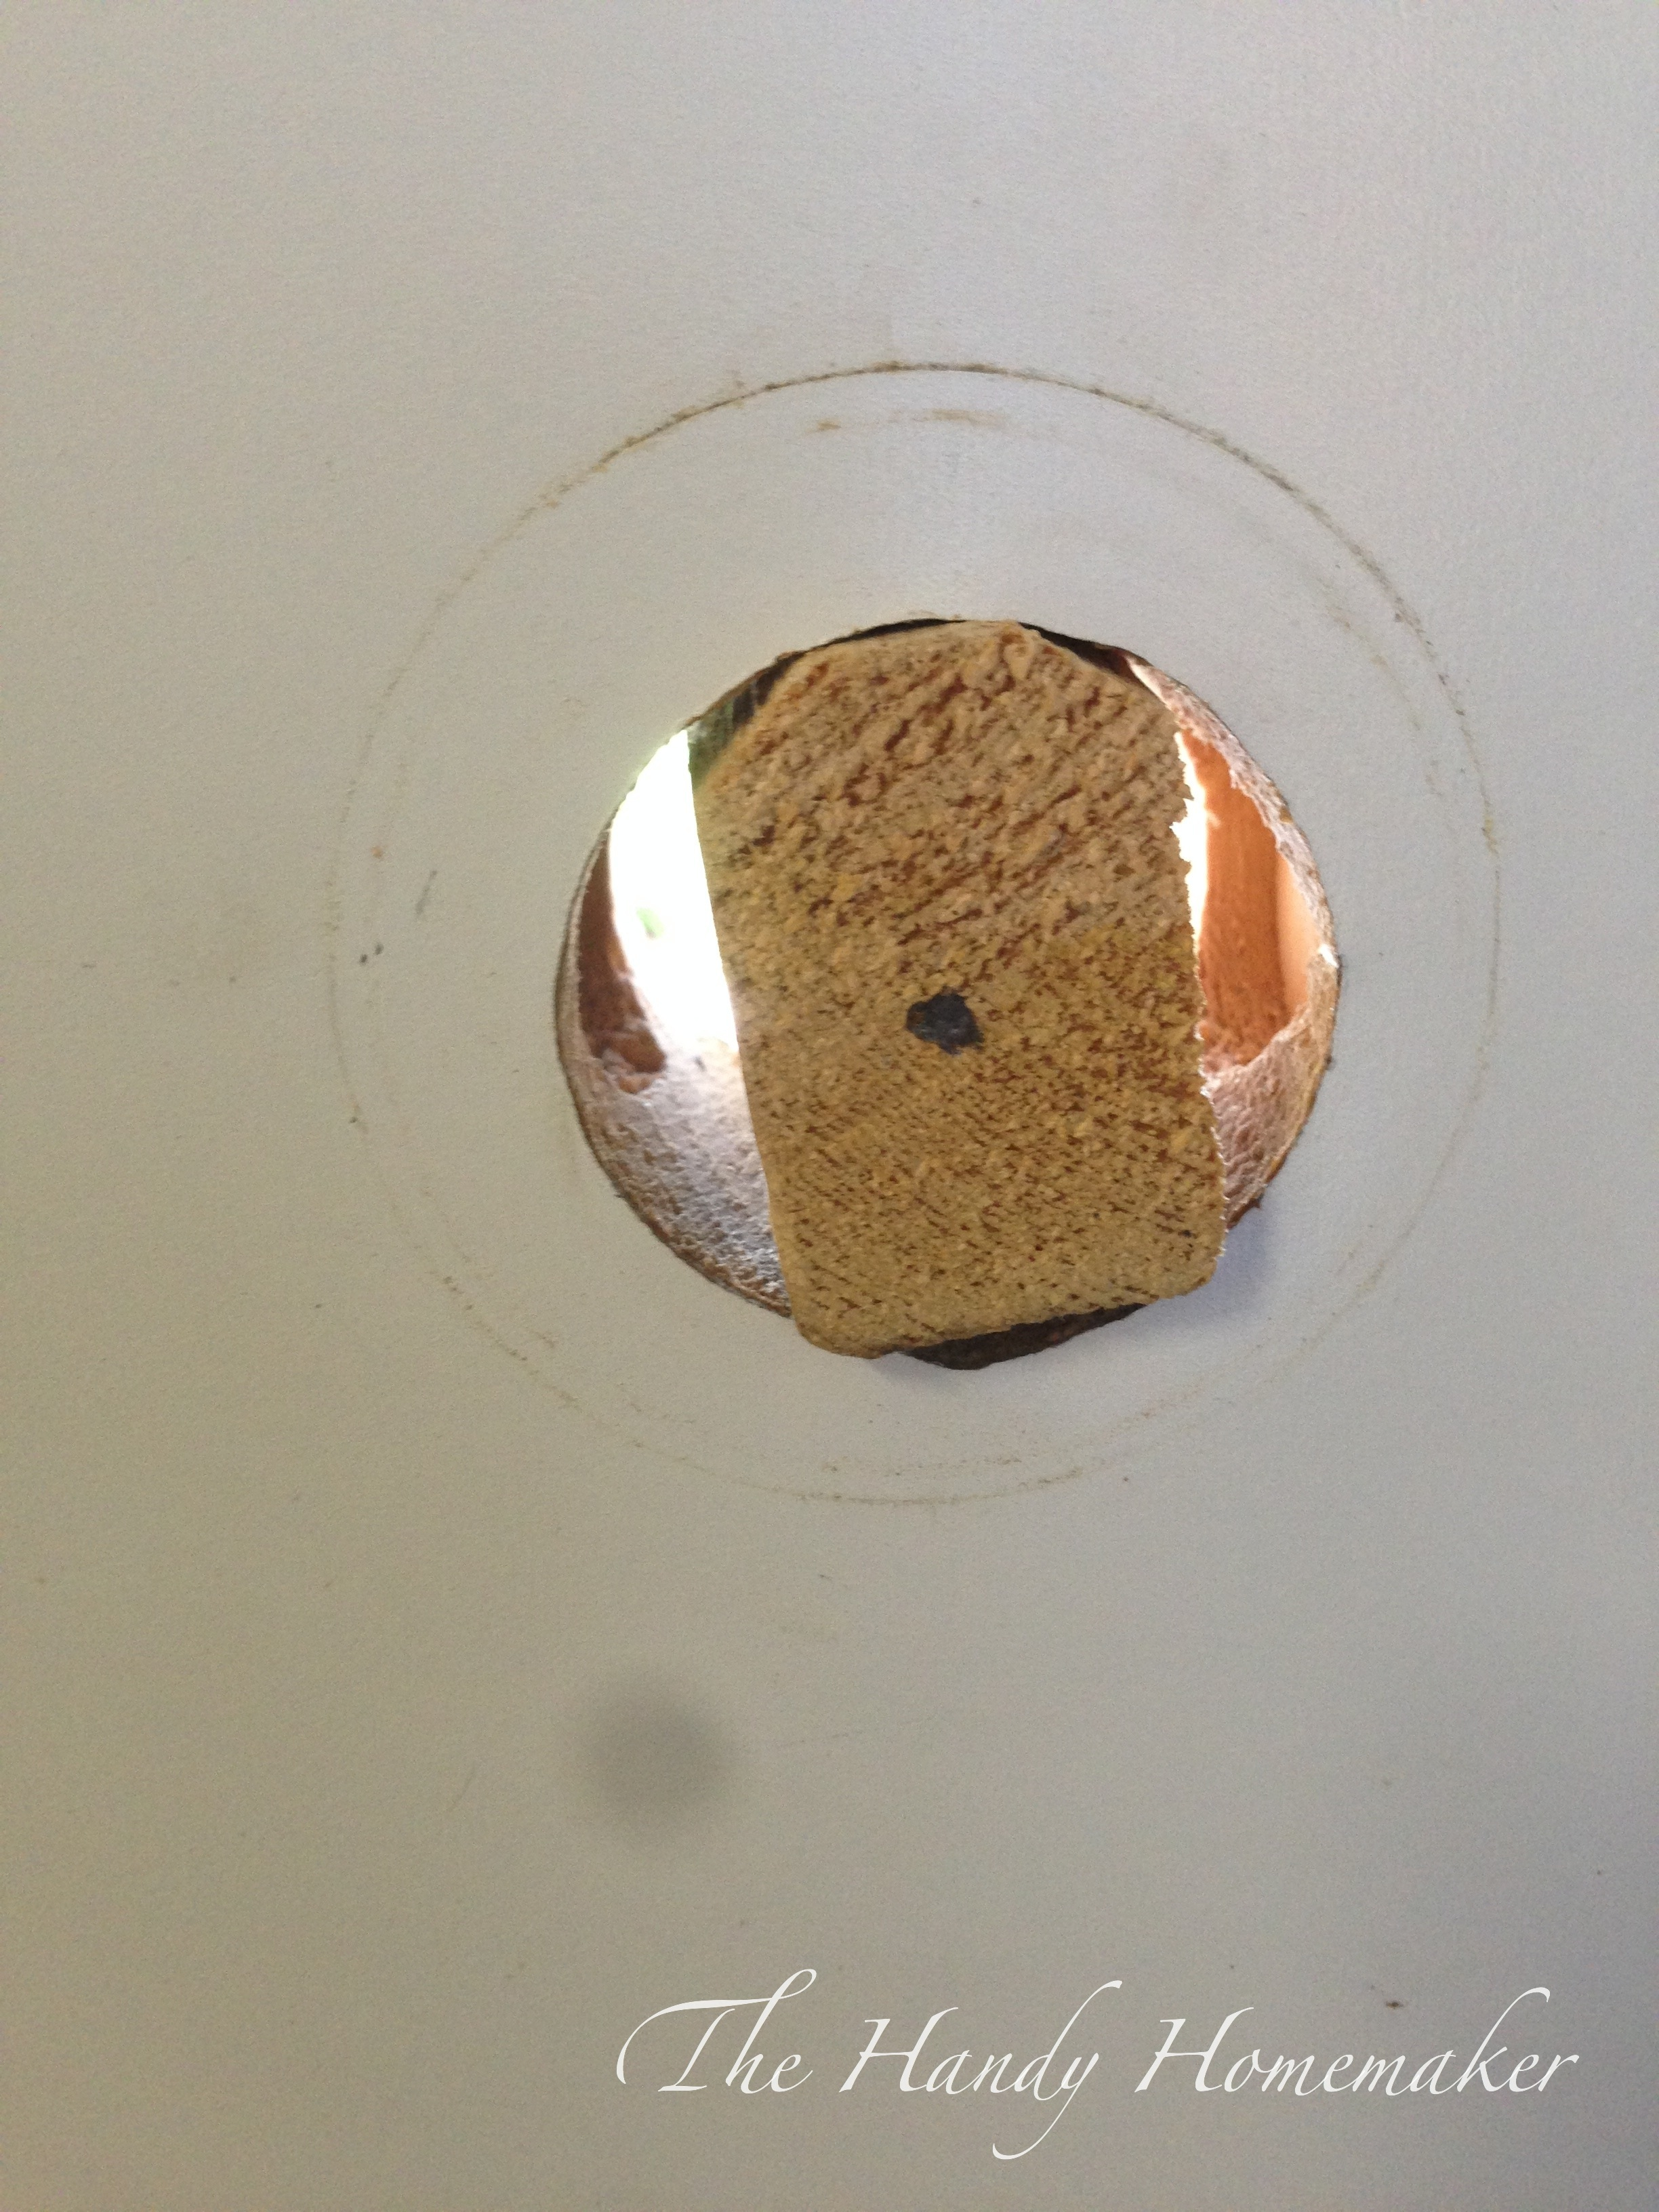 How To Drill A 2 1 8 Door Knob Hole Over A 1 1 2